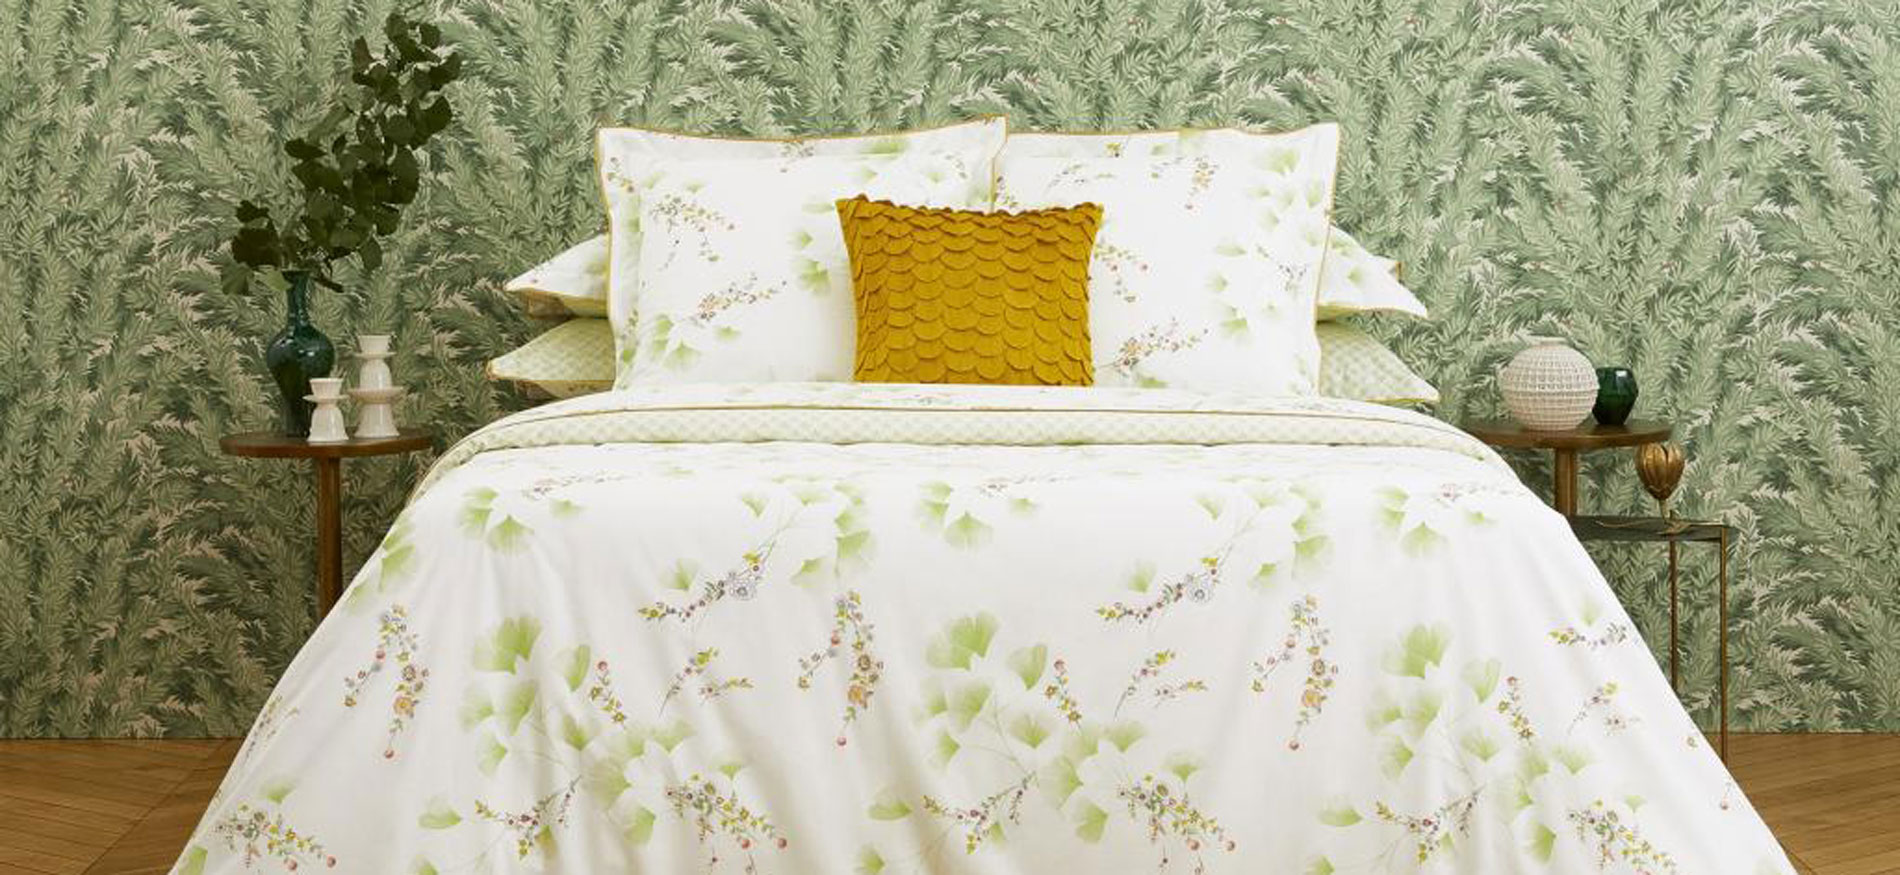 Yves Delorme bed linen and sheets